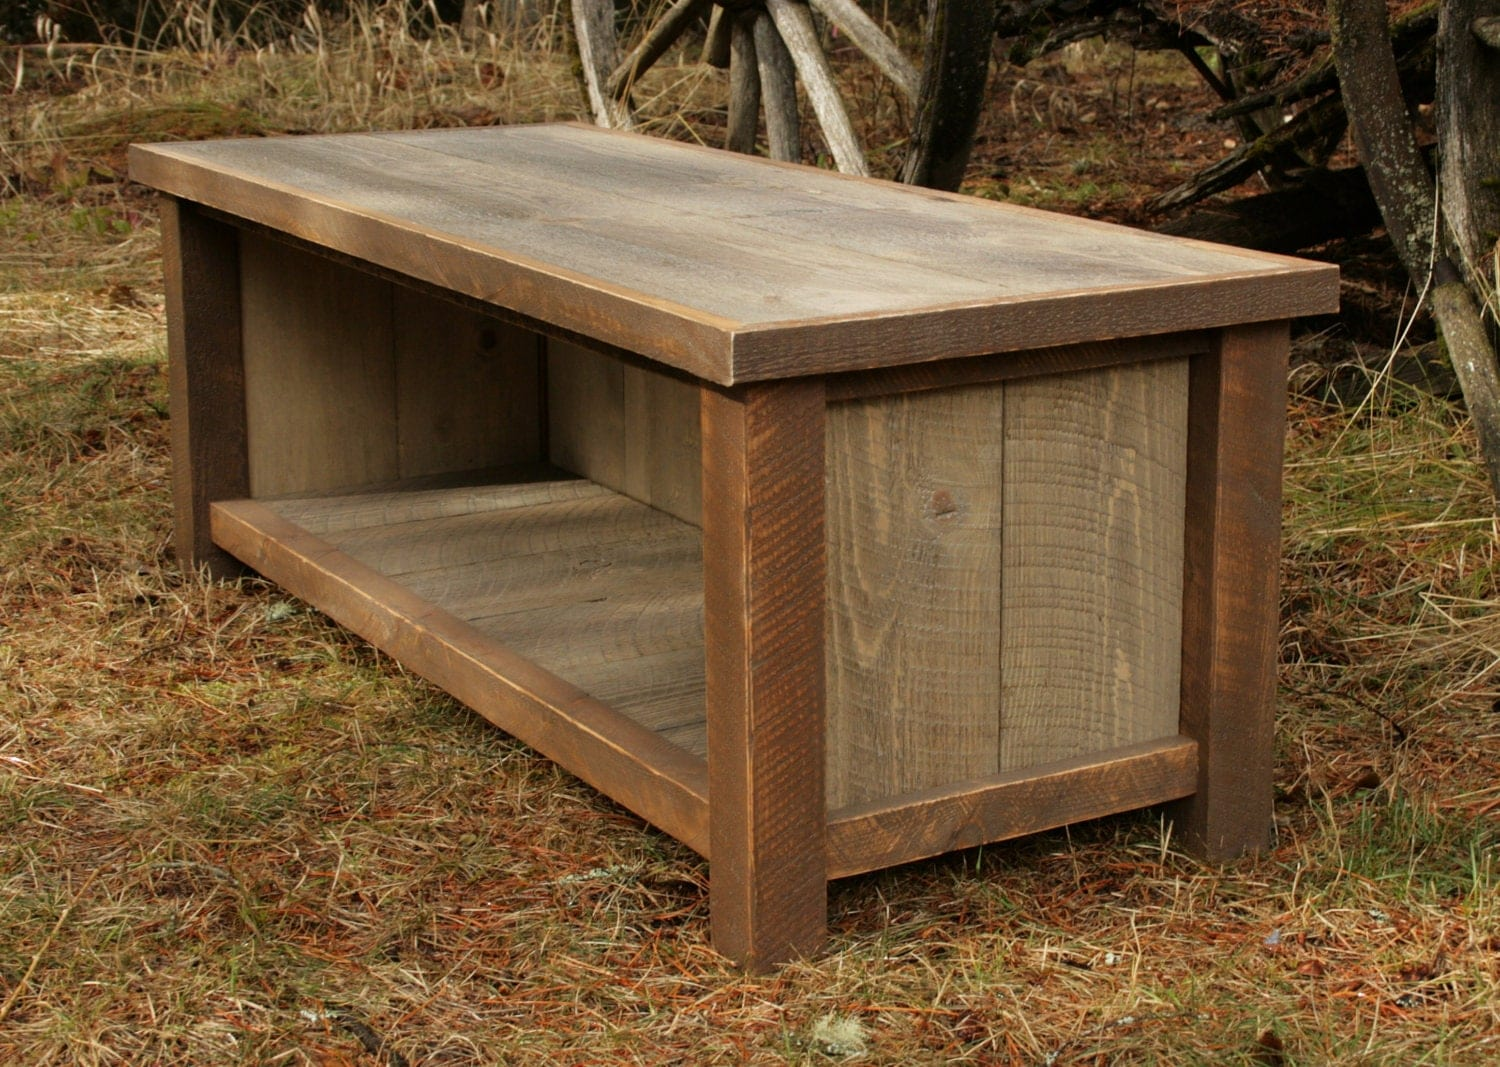 Rustic Wooden Foyer Bench : Rustic reclaimed entry bench and shelf combo by echopeakdesign